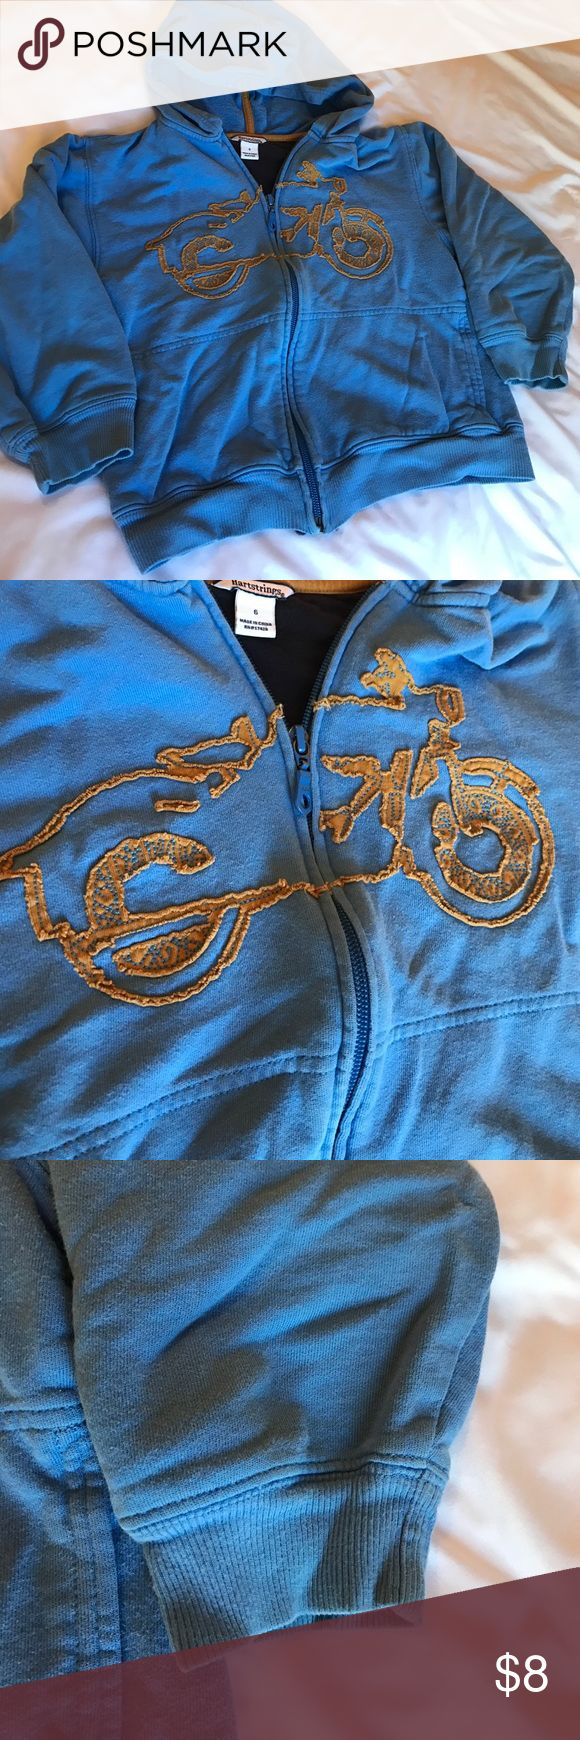 Blue Hoodie with Motorcycle Appliqué Really cute blue zip up hoodie with motorcycle appliqué in brown. Great condition with minor fading and wear on sleeves. Hartstrings Shirts & Tops Sweatshirts & Hoodies